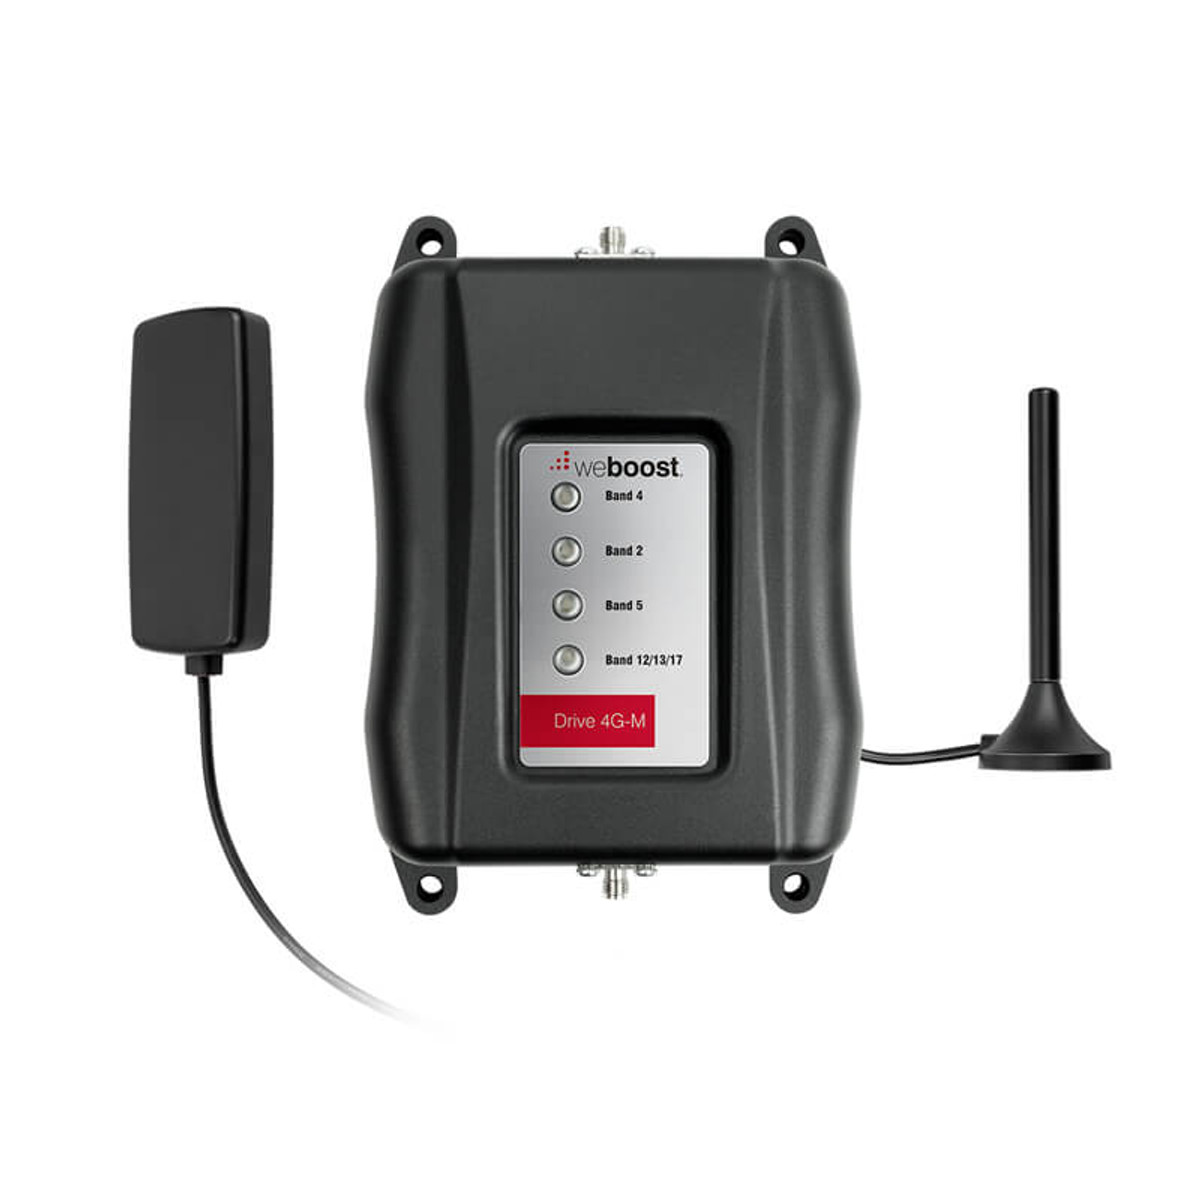 weBoost Drive 4G-M Cell Phone Signal Booster | 470121 (New Sku)